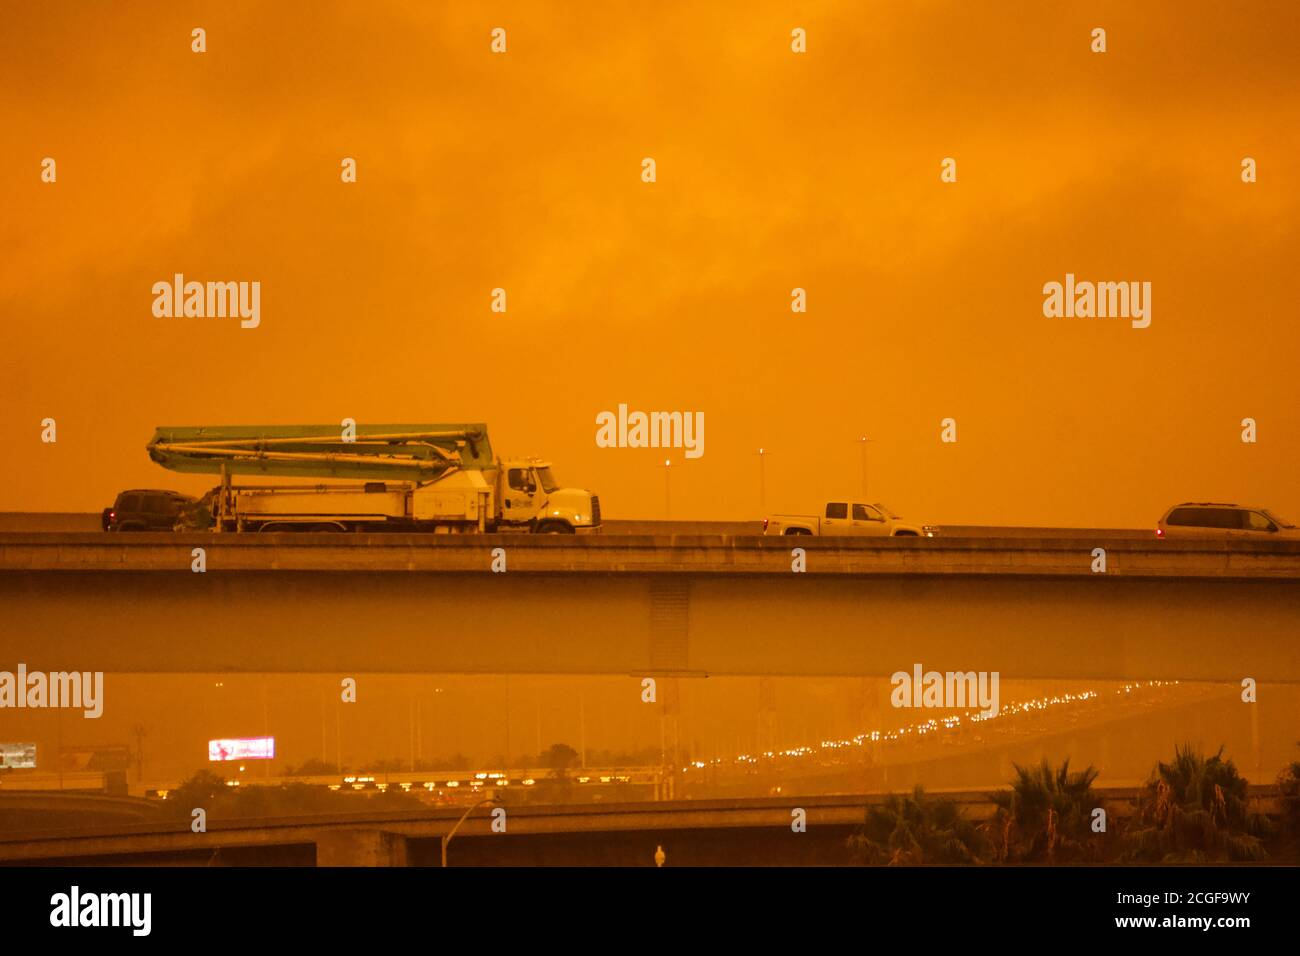 September 9, 2019. Traffic on Highway 80 and San Francisco Bay Bridge and toll booth during freak afternoon orange sky from toxic smoke of wildfires. Stock Photo